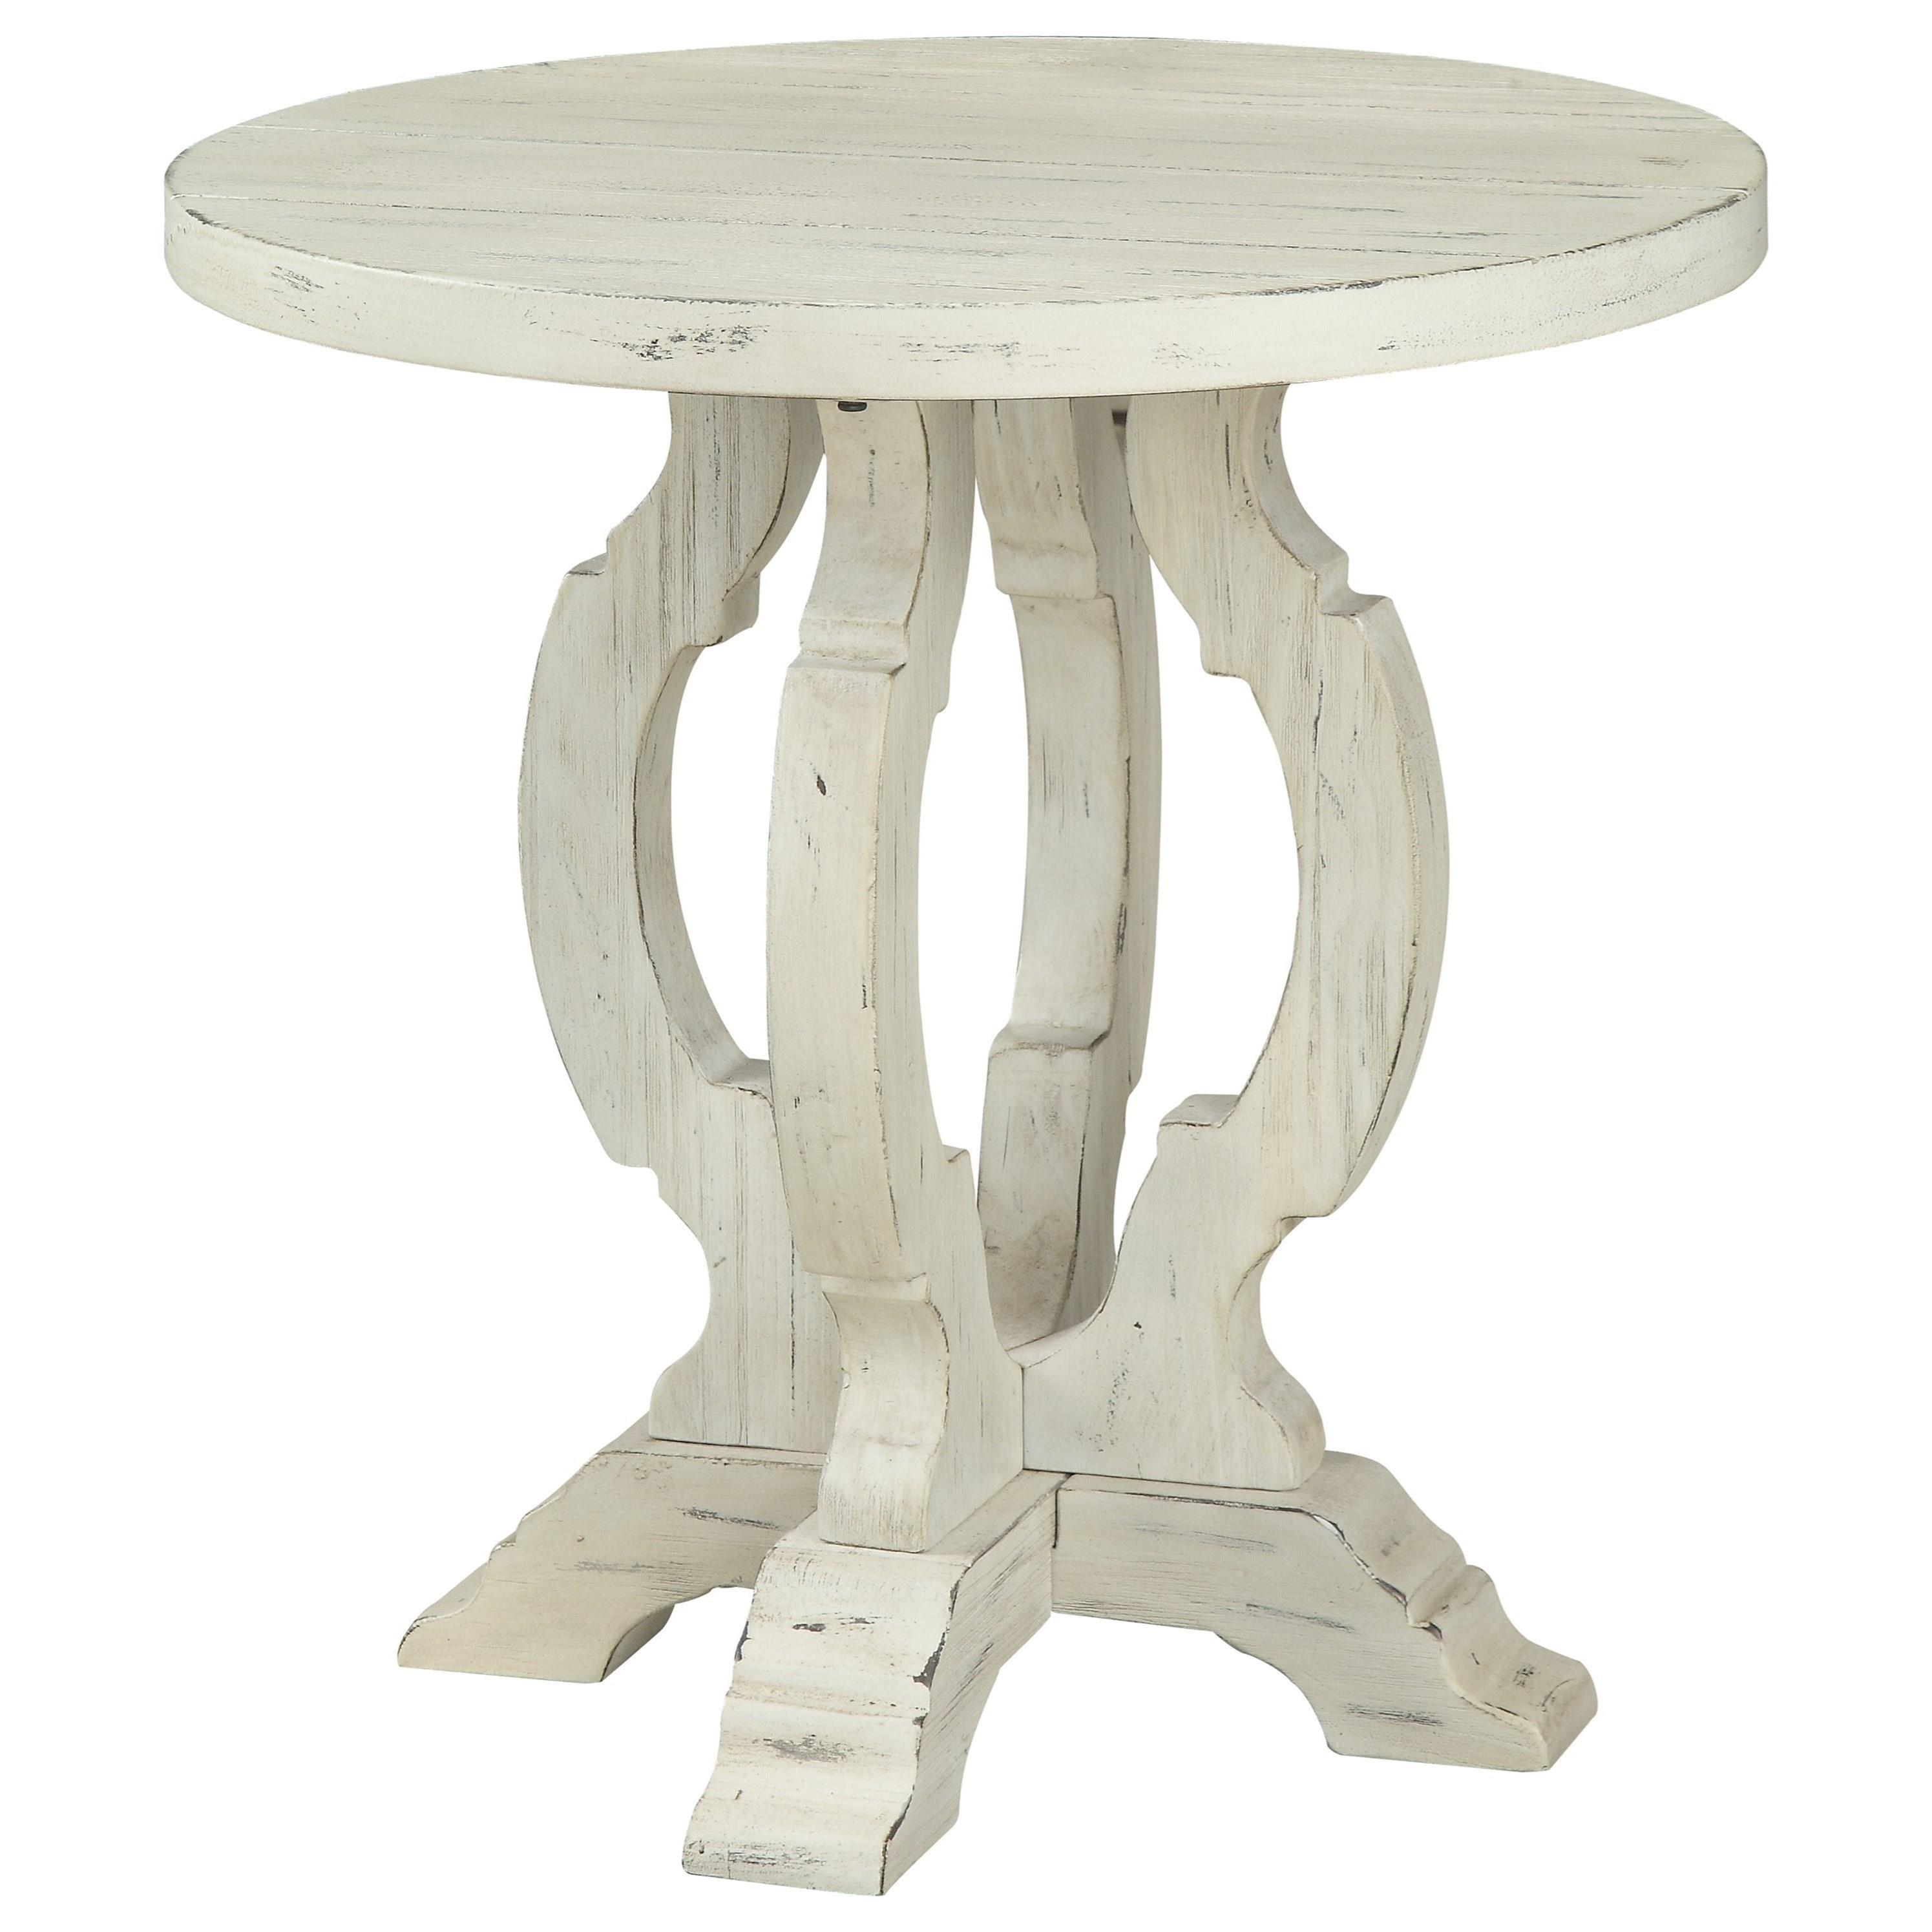 Orchard Park Orchard Park Accent Table by C2C at Walker's Furniture